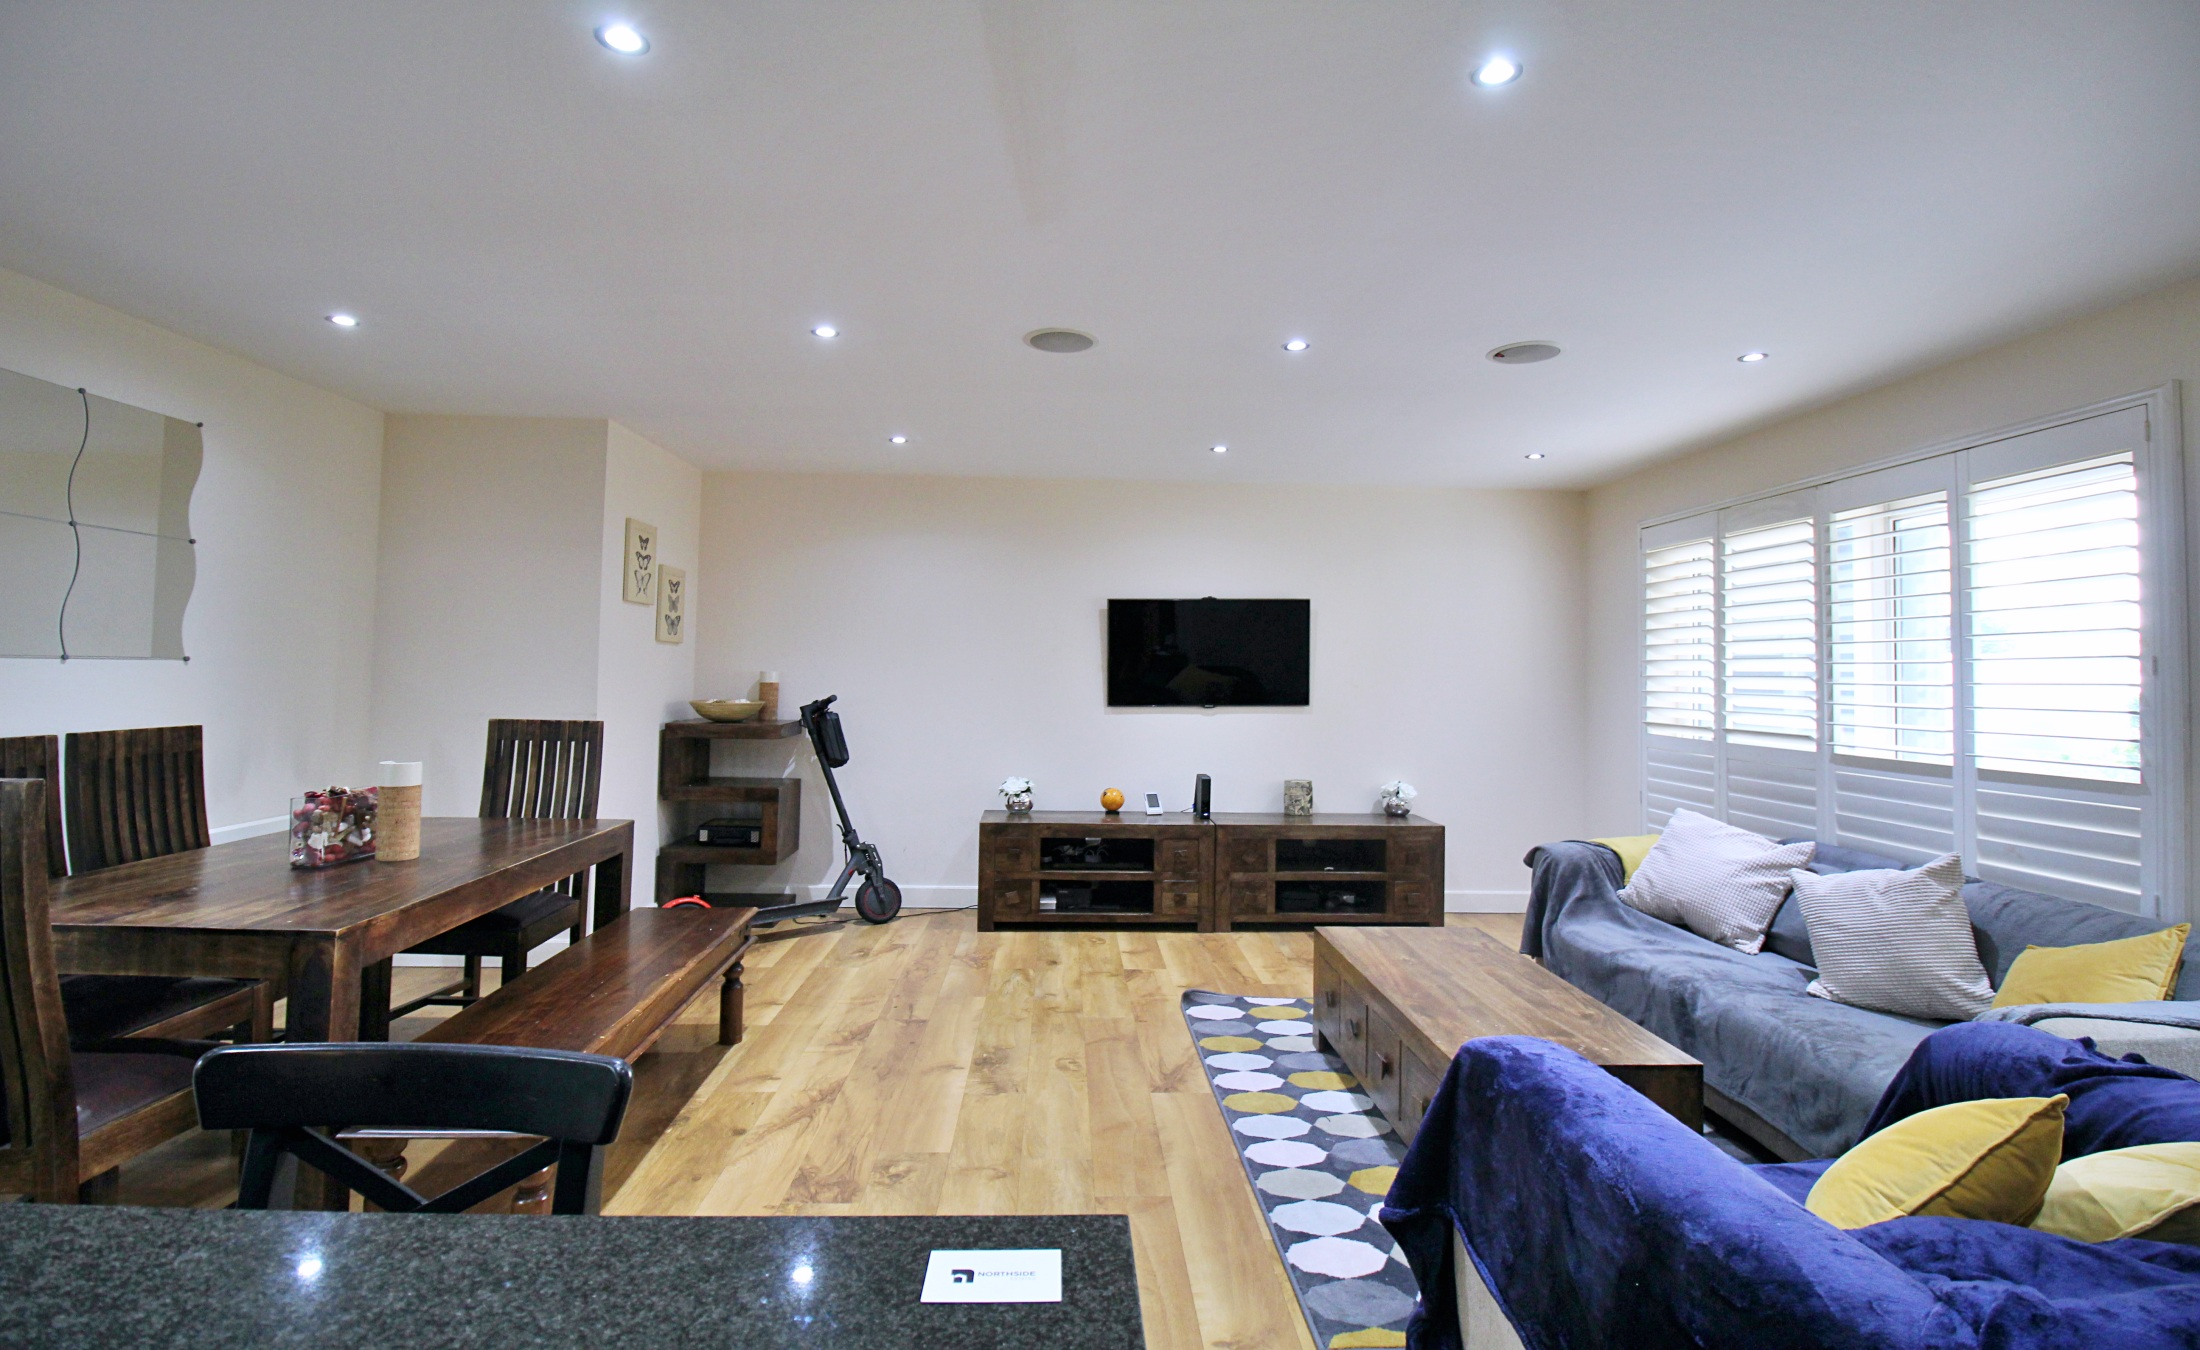 Two Bedroom Apartment For Sale – NW9 Beaufort Park, London